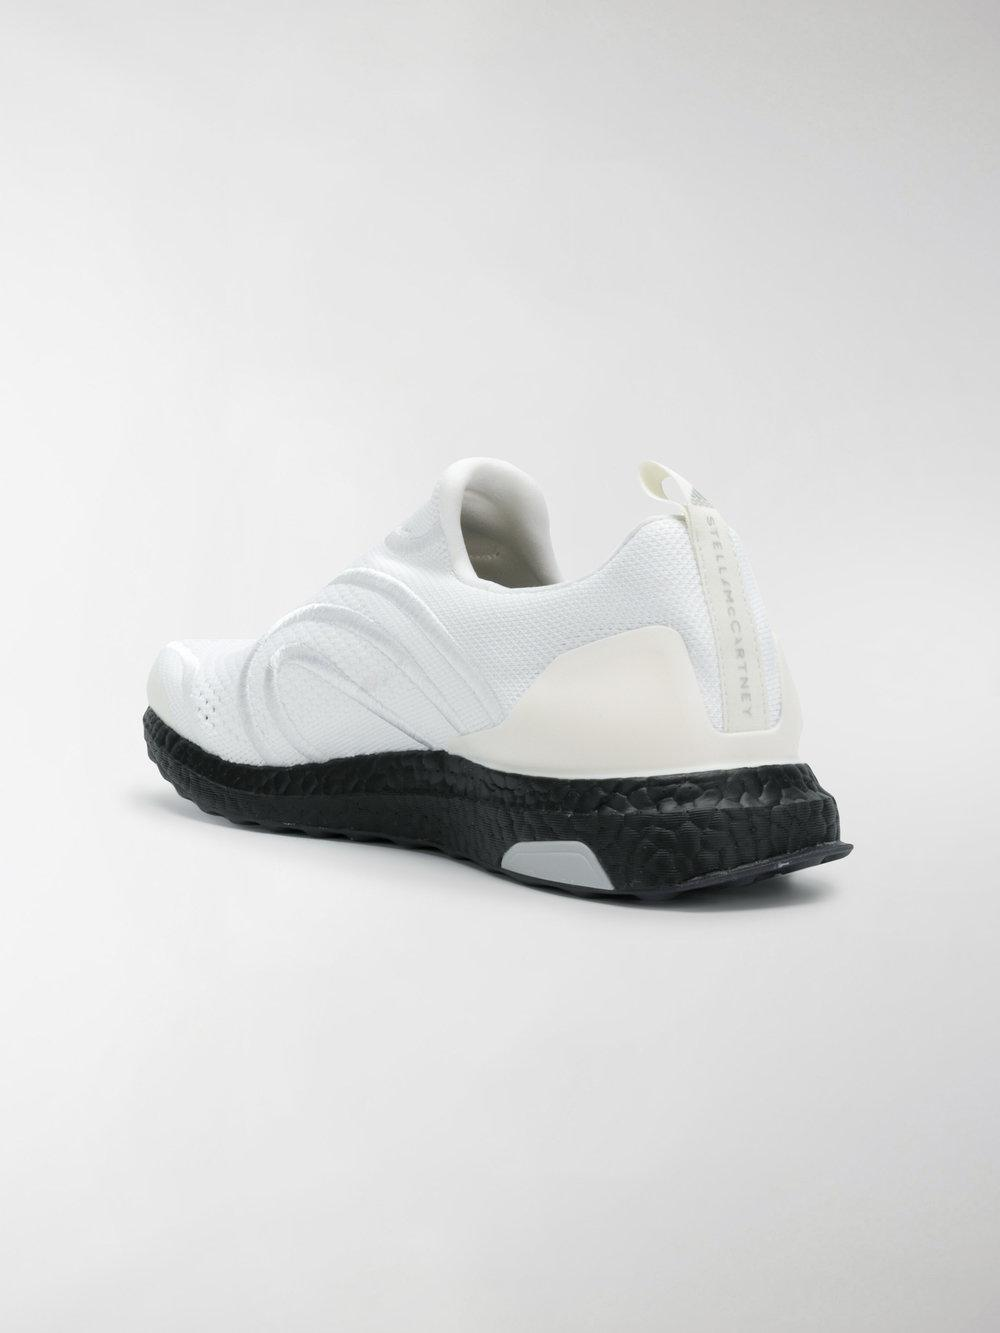 adidas By Stella McCartney Rubber Adidas By Running Sneakers in White